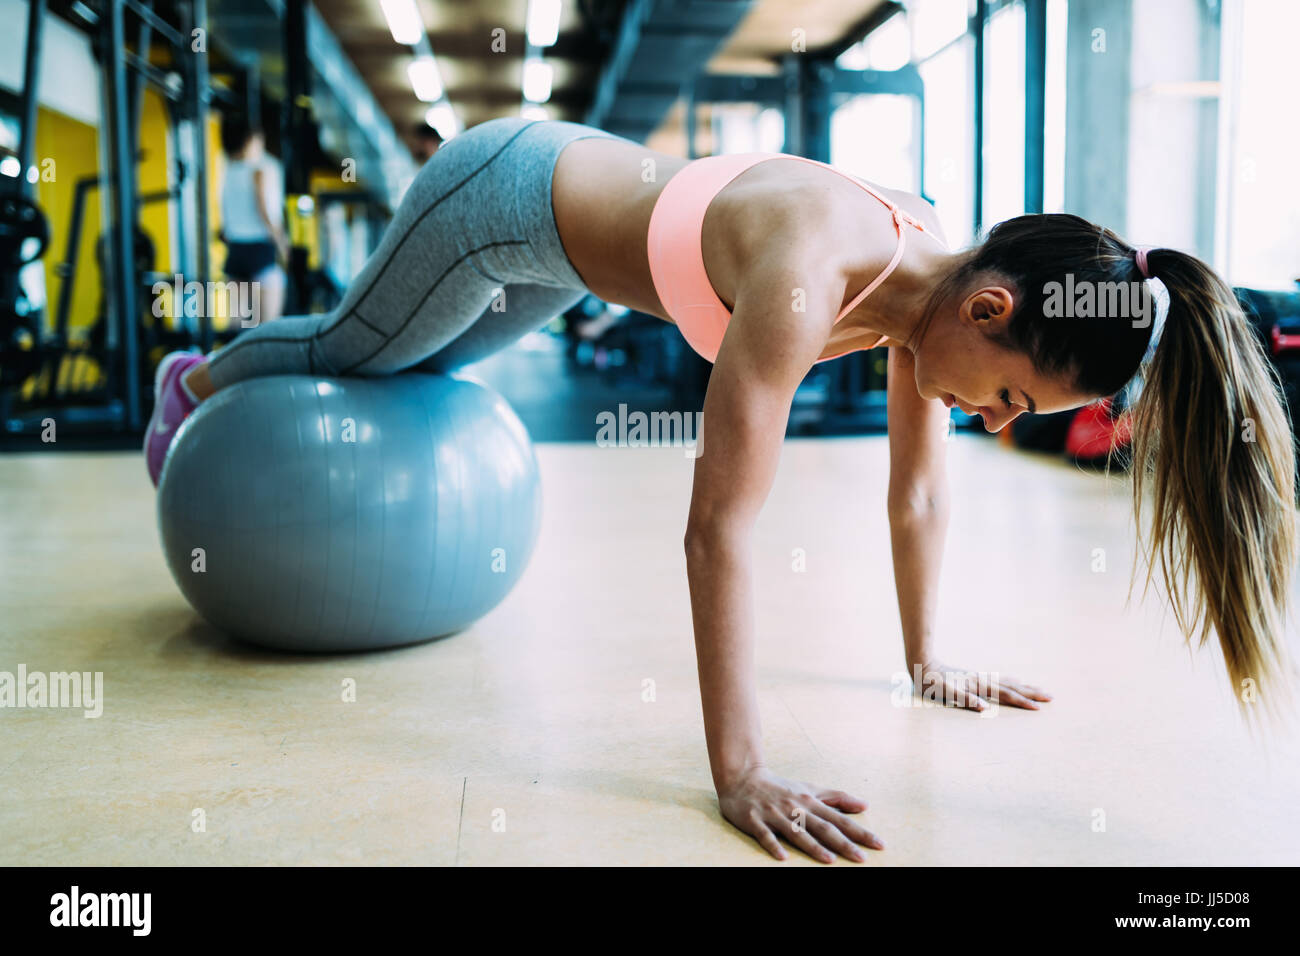 Fitness woman working push ups in gym - Stock Image